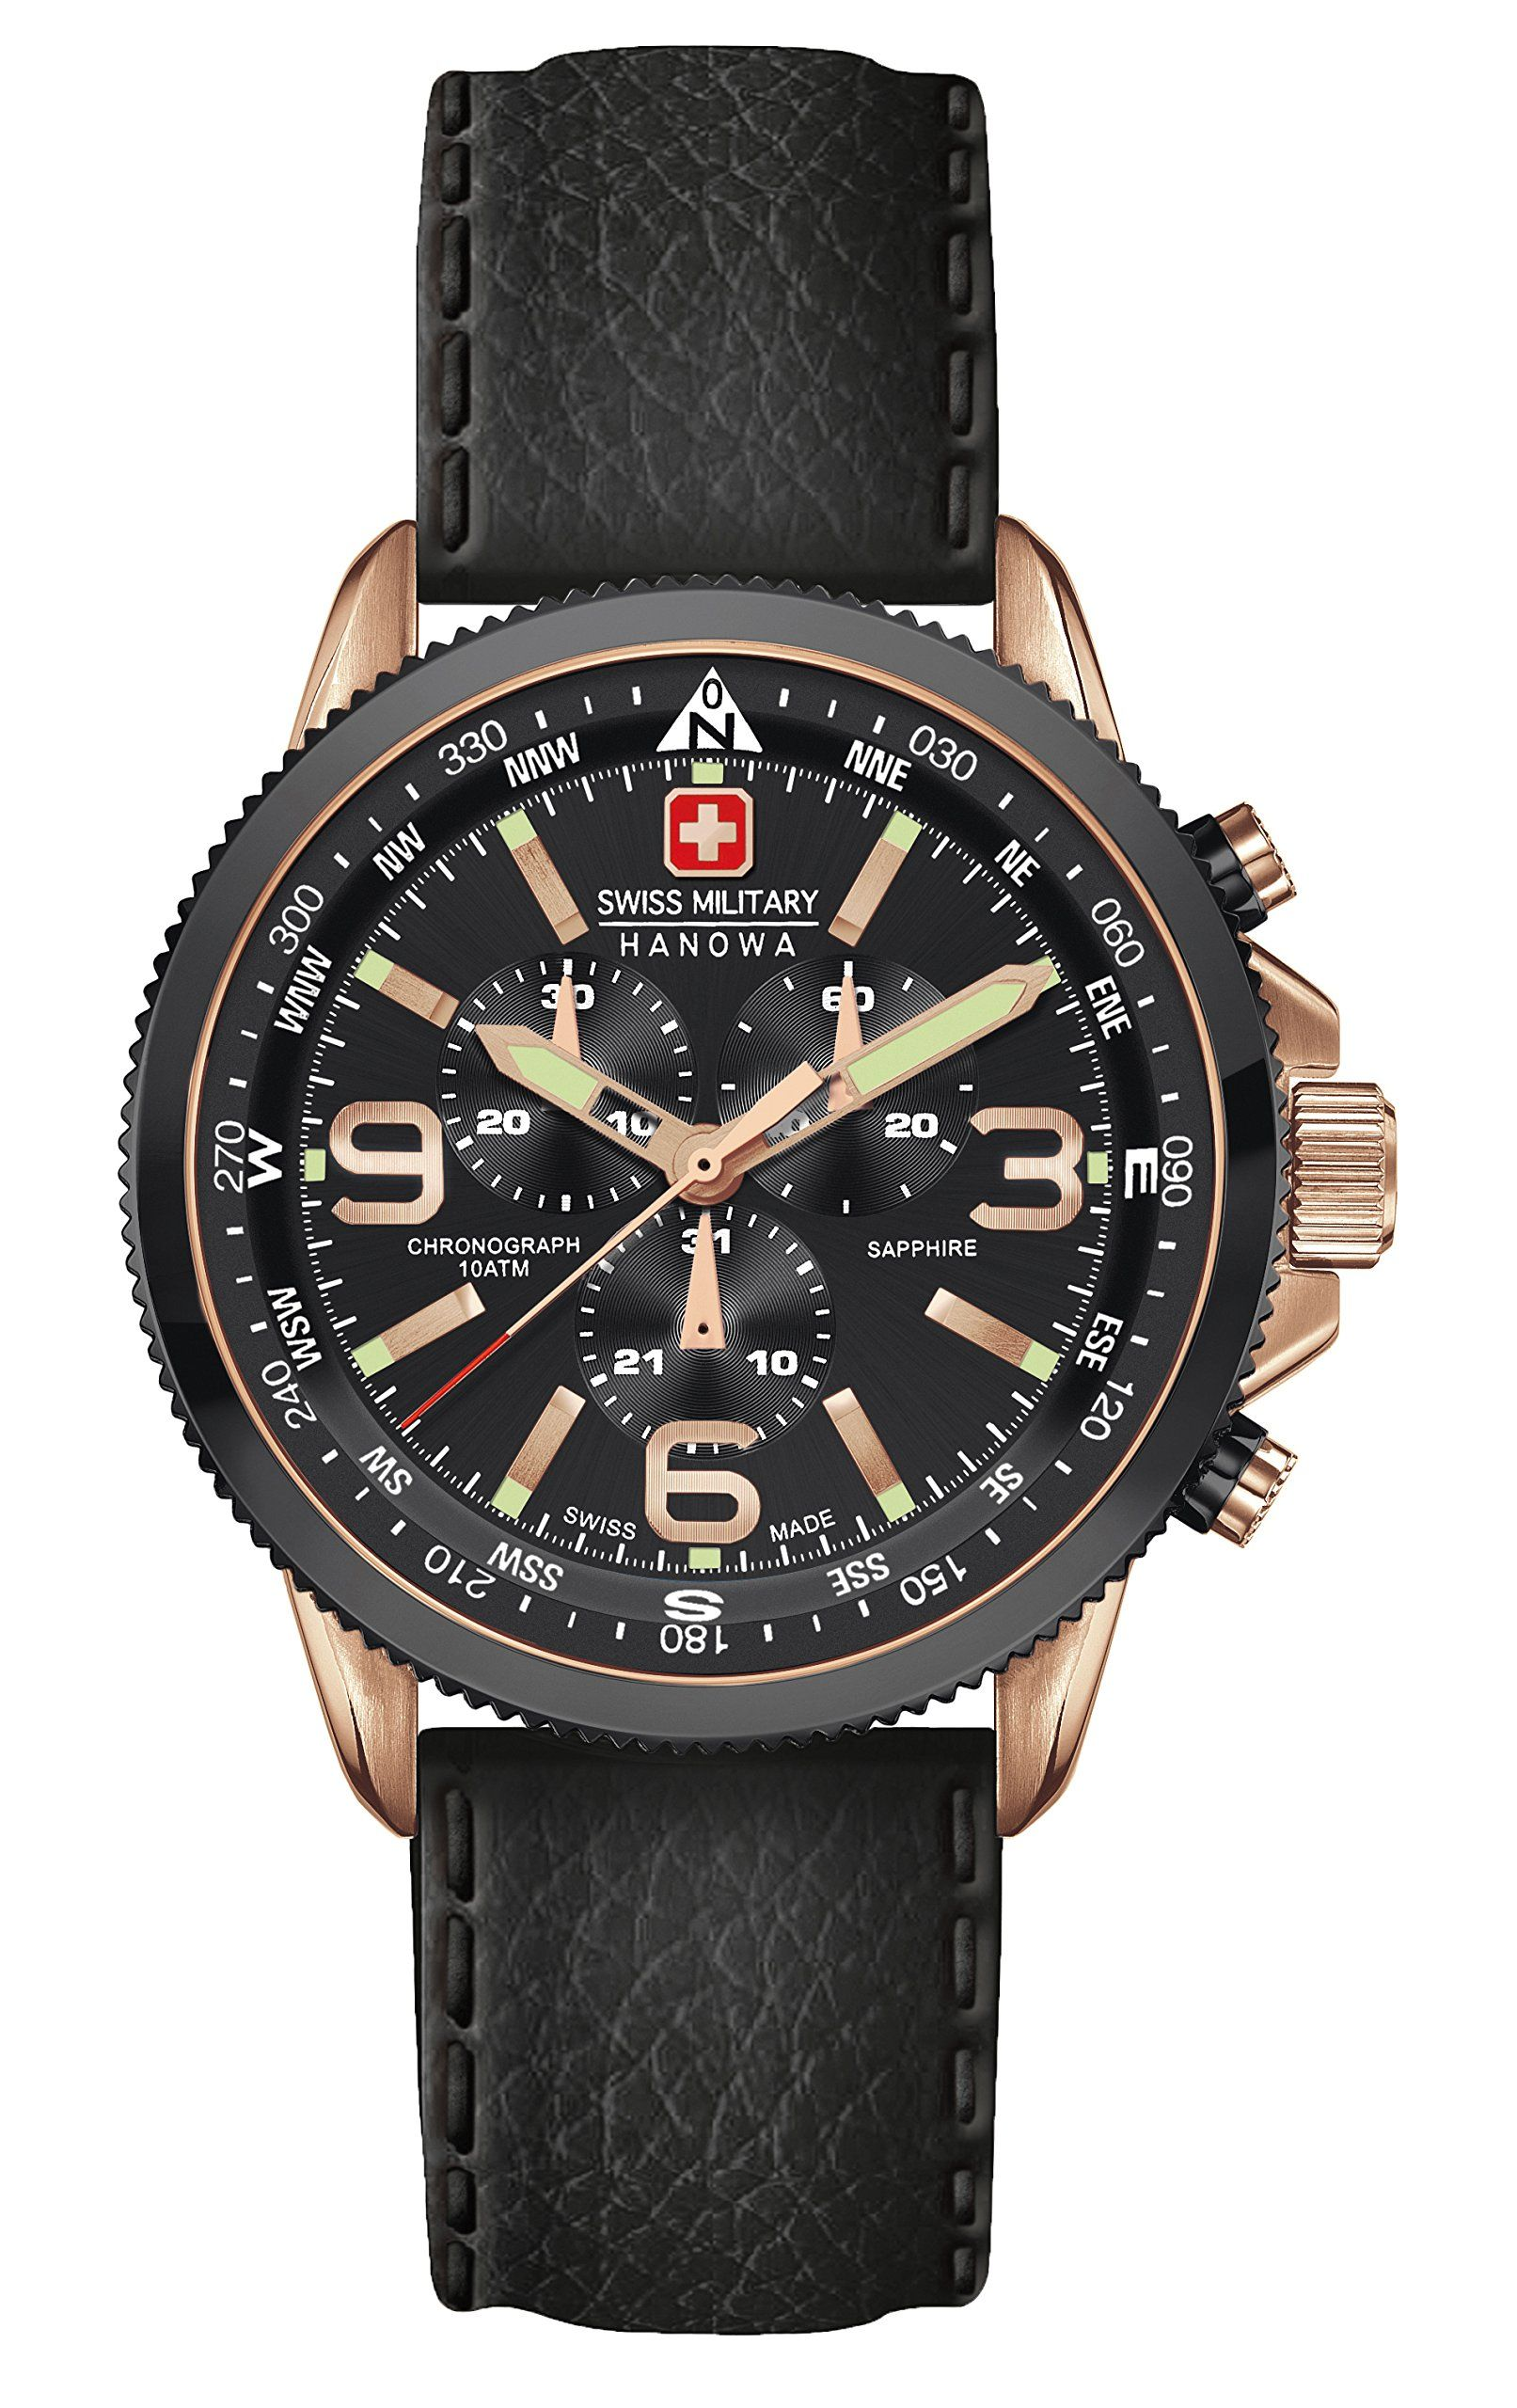 f5a789126aed Swiss Military Arrow Men s Watch Black Dial Chronograph Leather Strap  6-4224.09.007